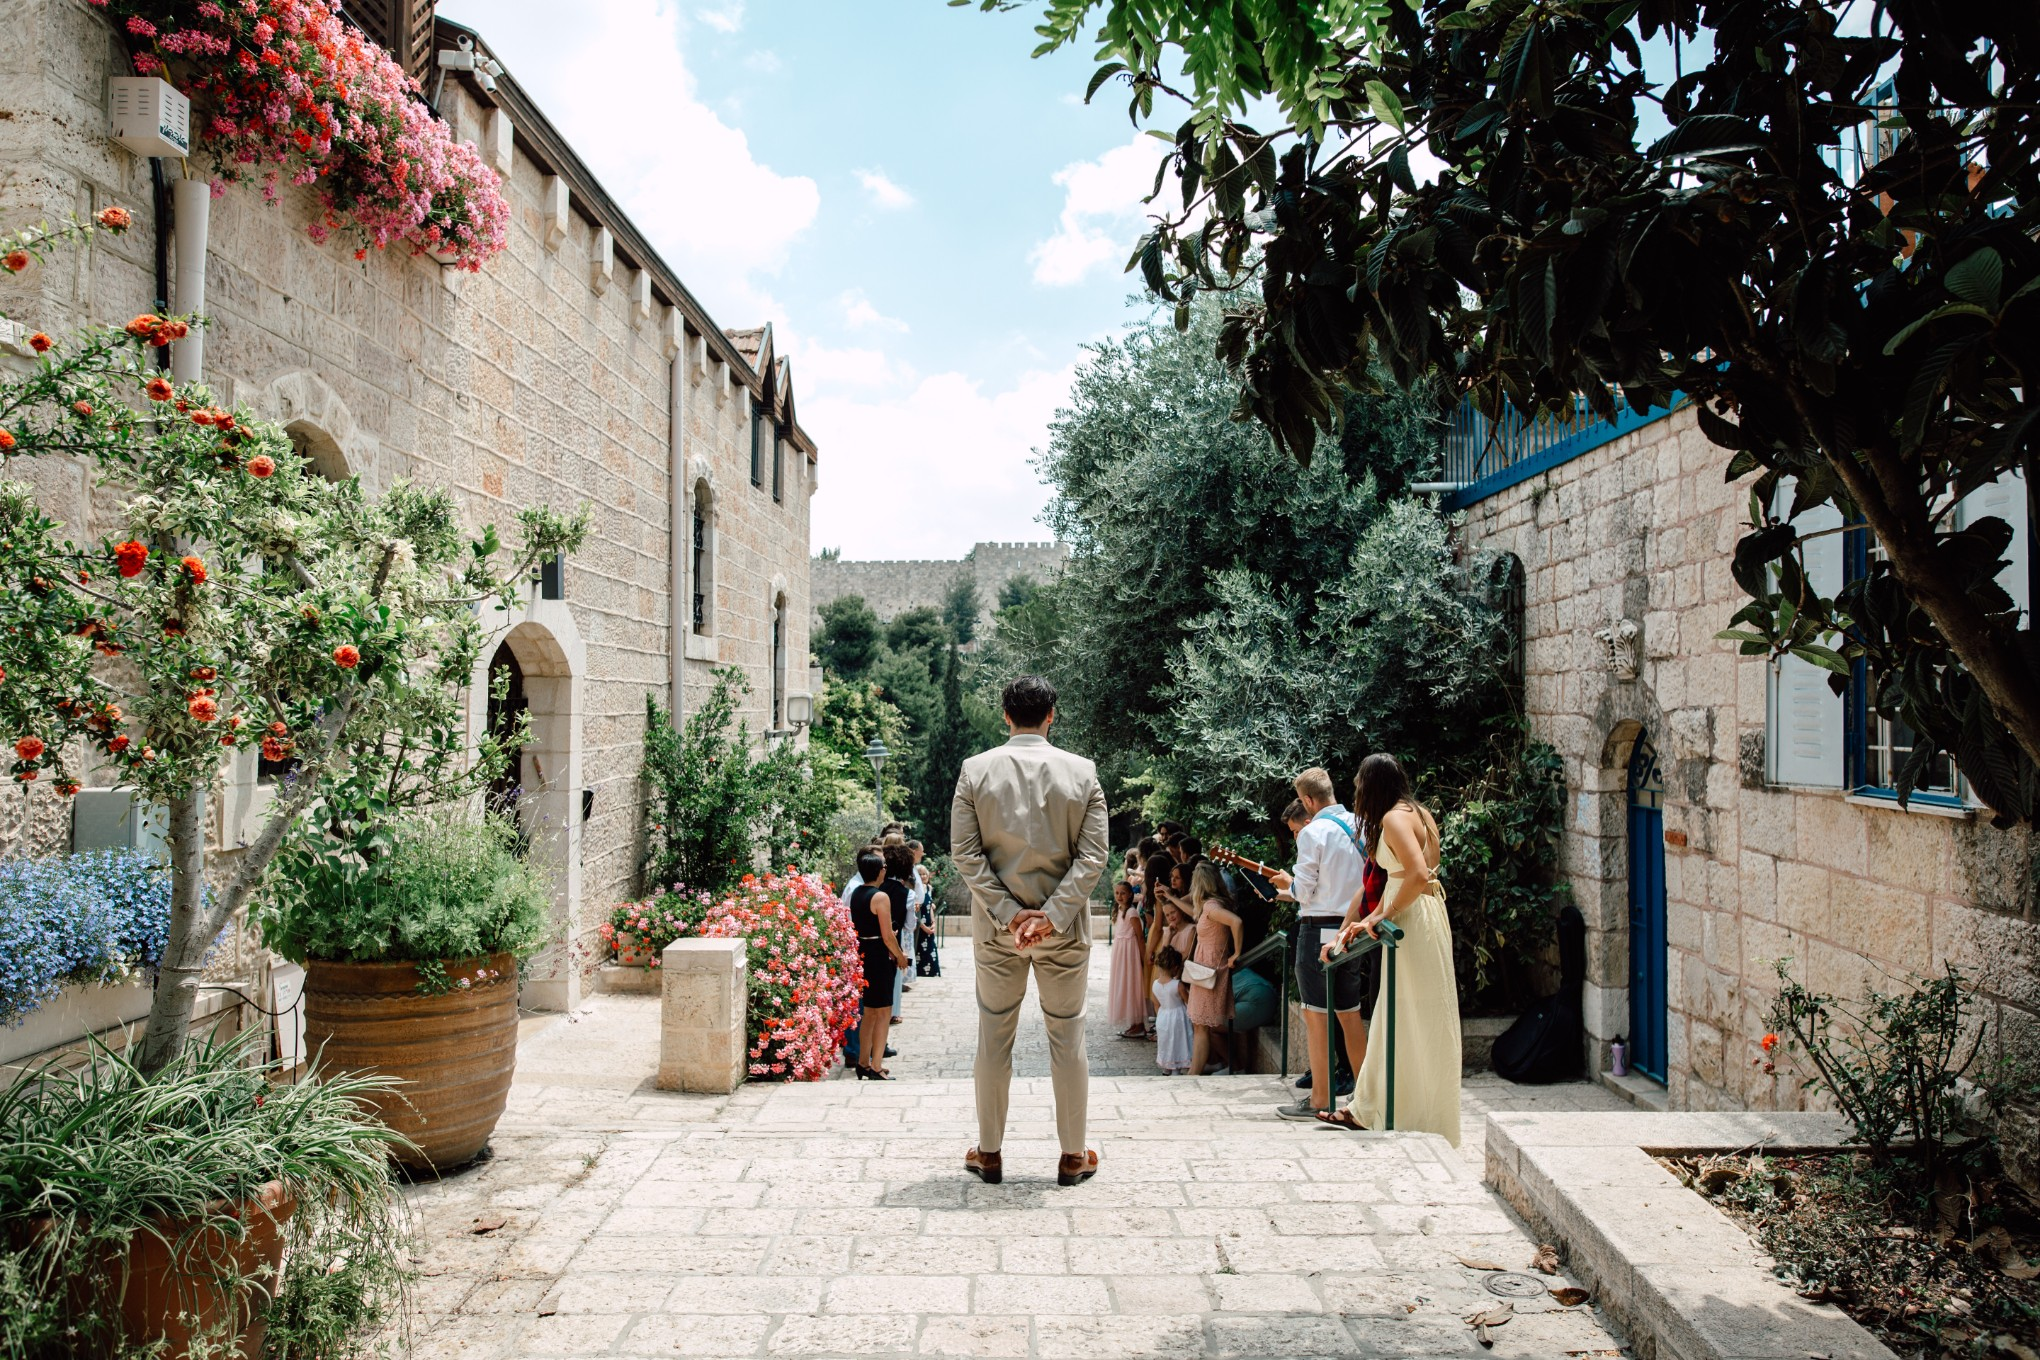 Jerusalem-Pia-Anna-Christian-Wedding-Photography-AD-T-28.jpg